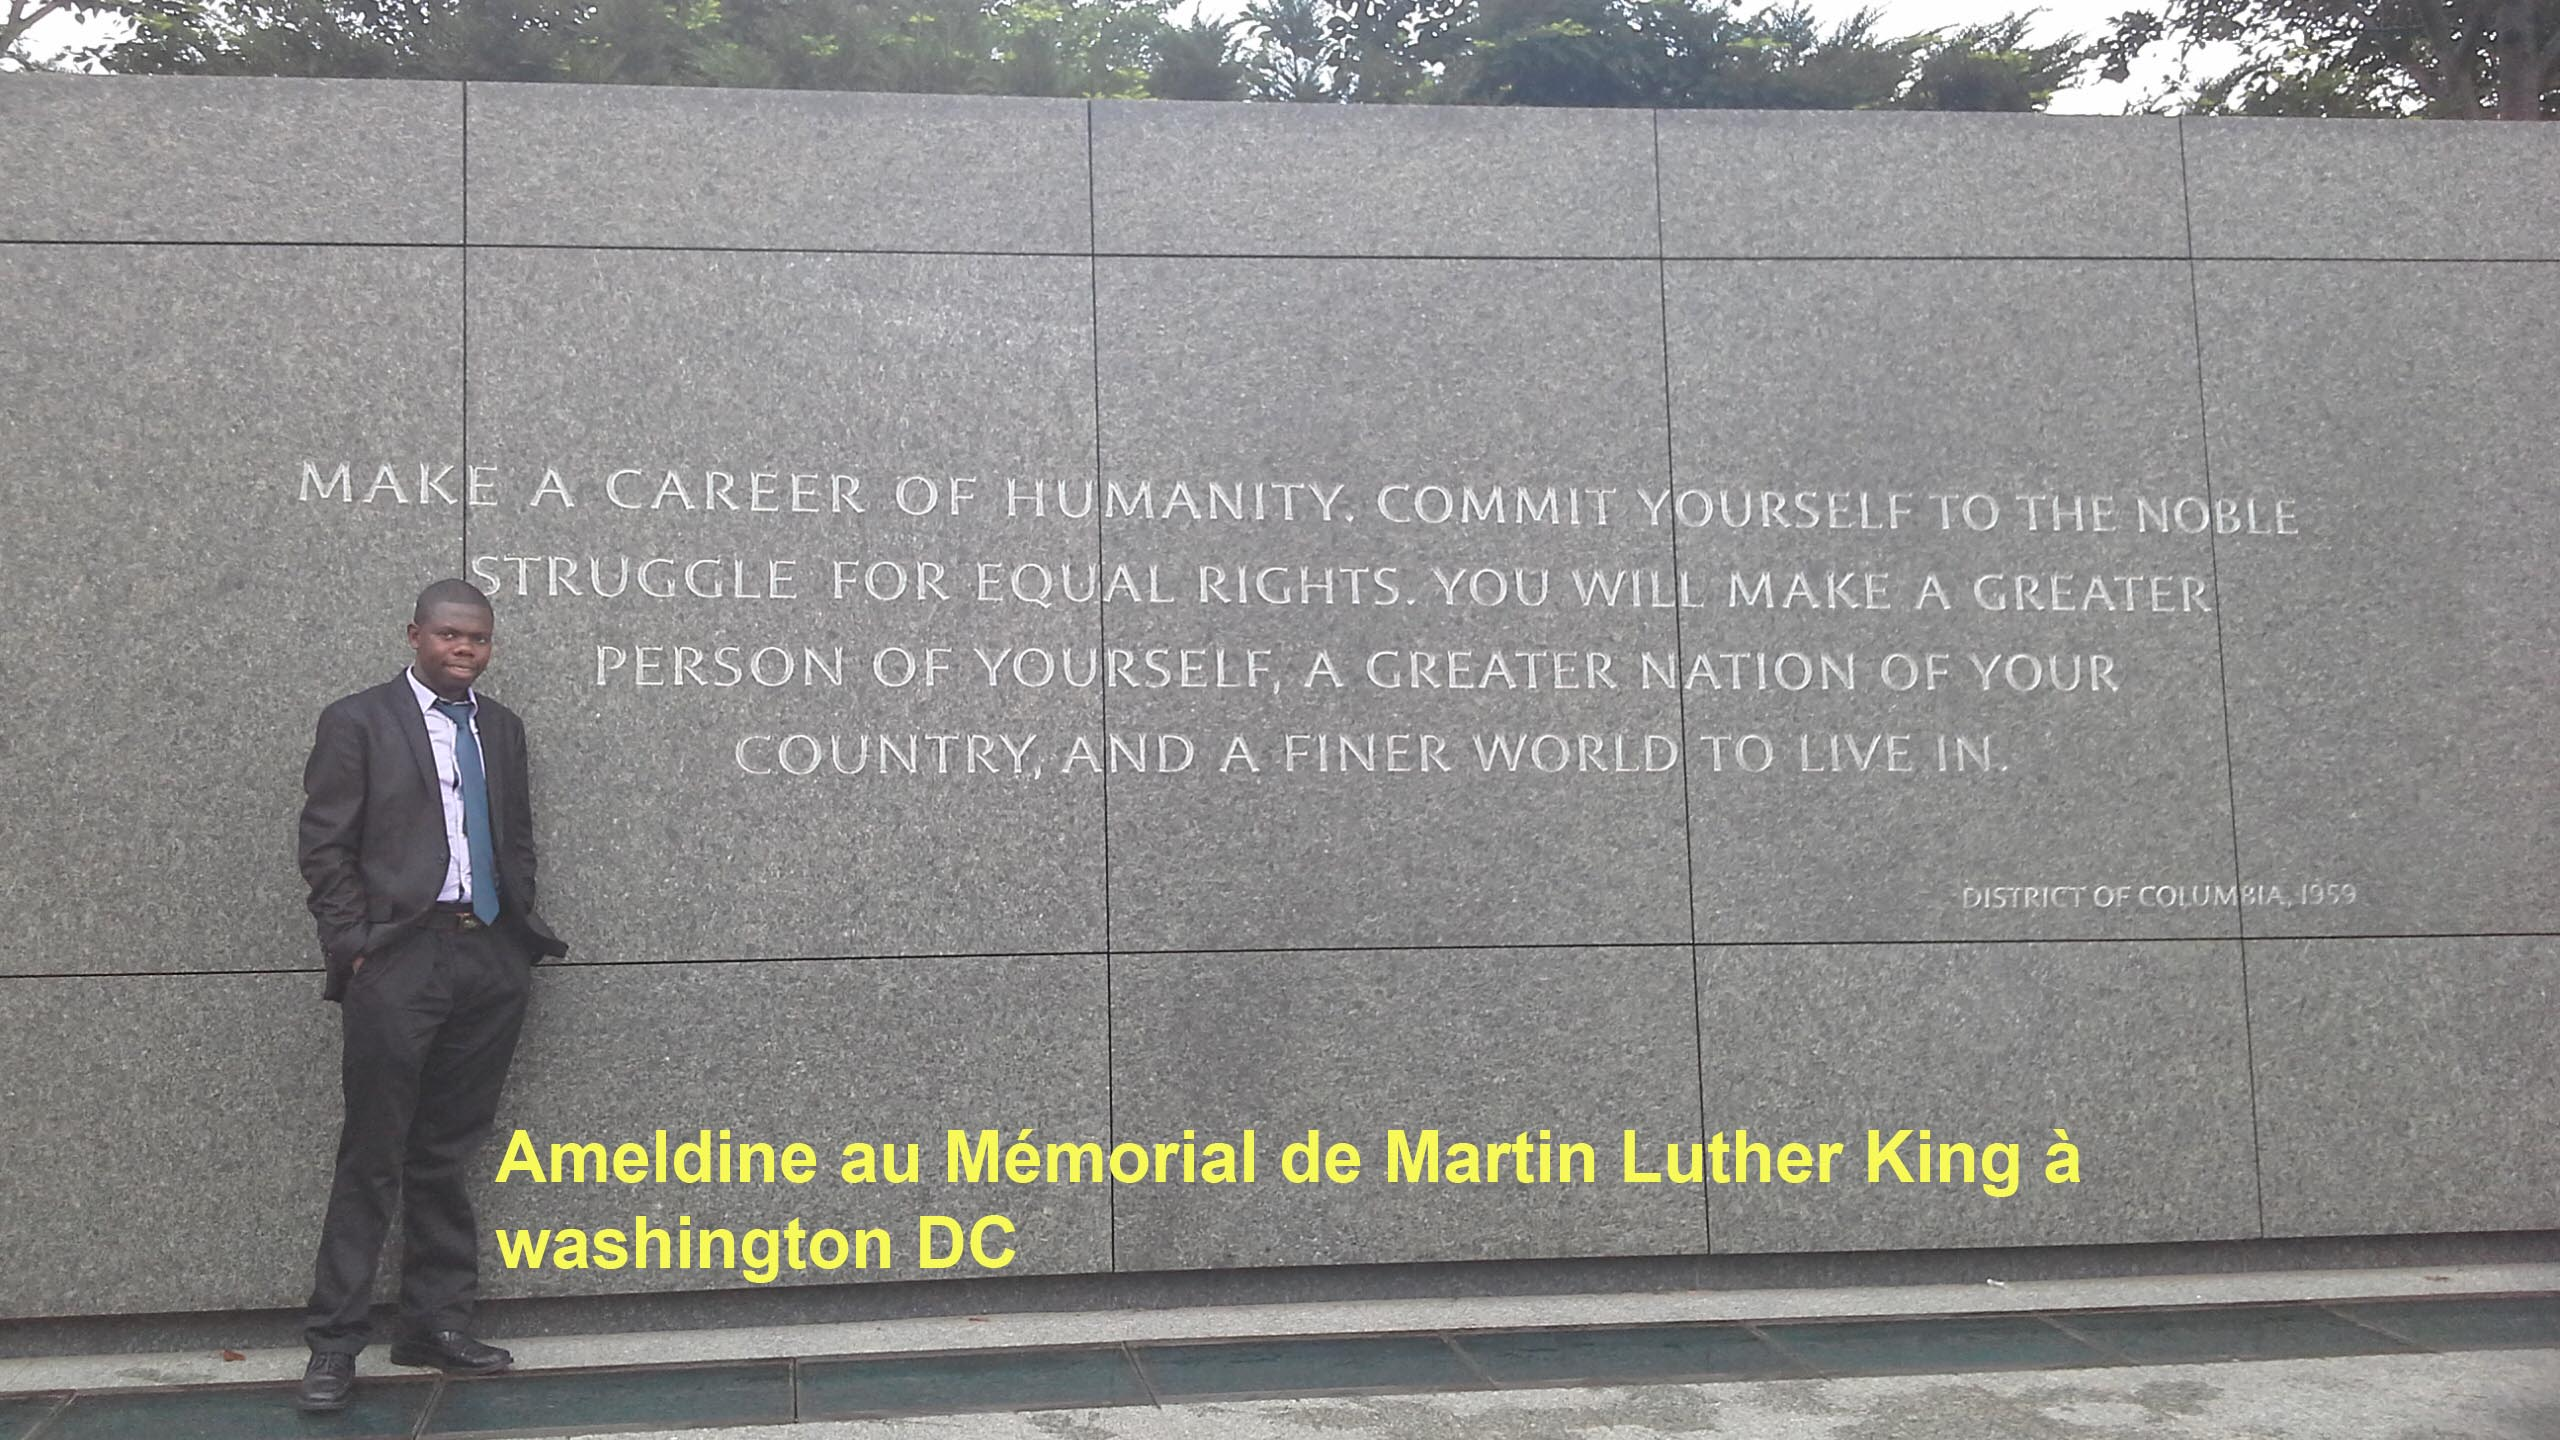 Ameldine au Mmorial de Martin Luther King